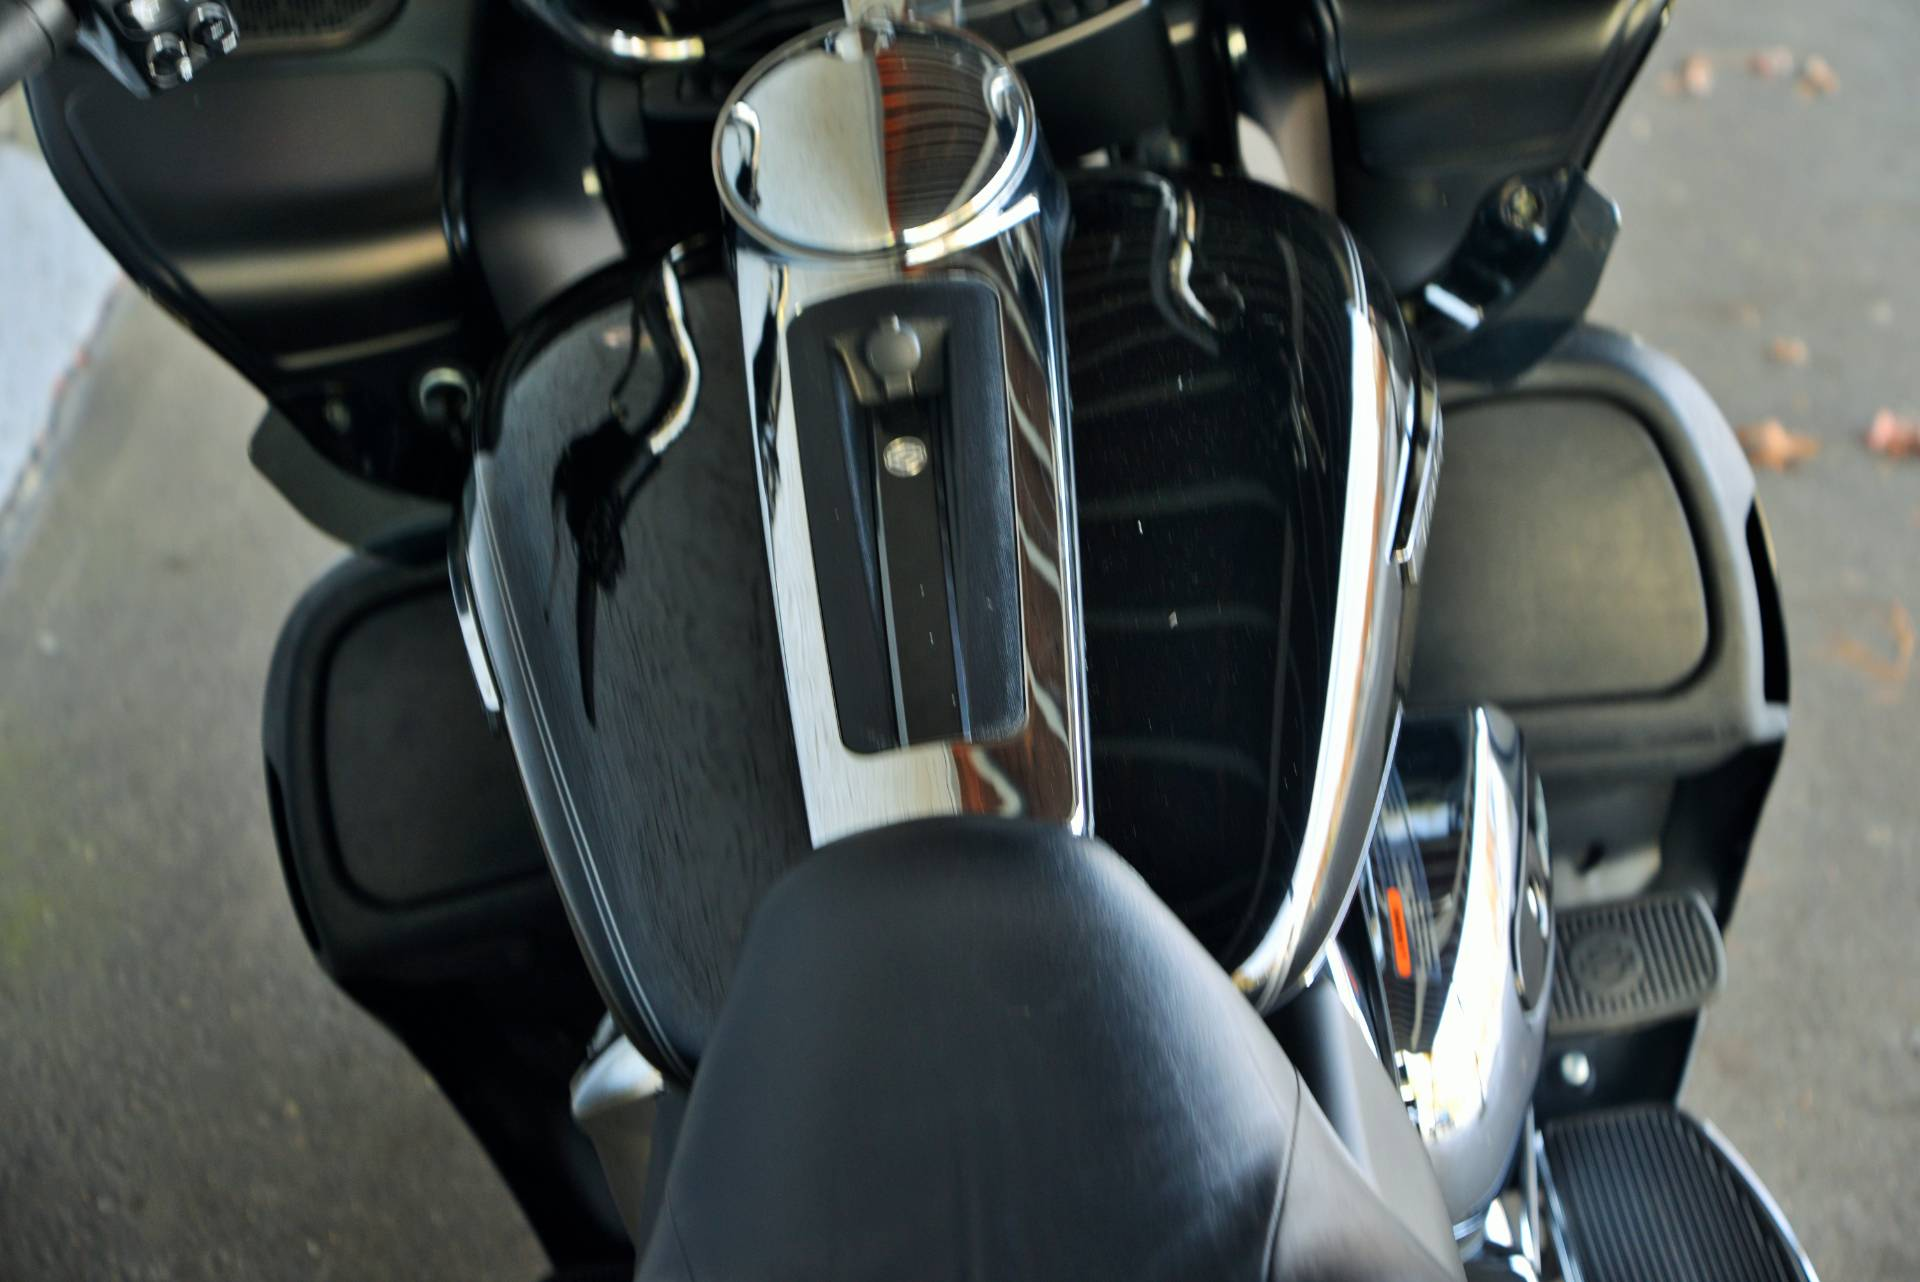 2017 Harley-Davidson ROADGLIDE ULTRA in Lakewood, New Jersey - Photo 10